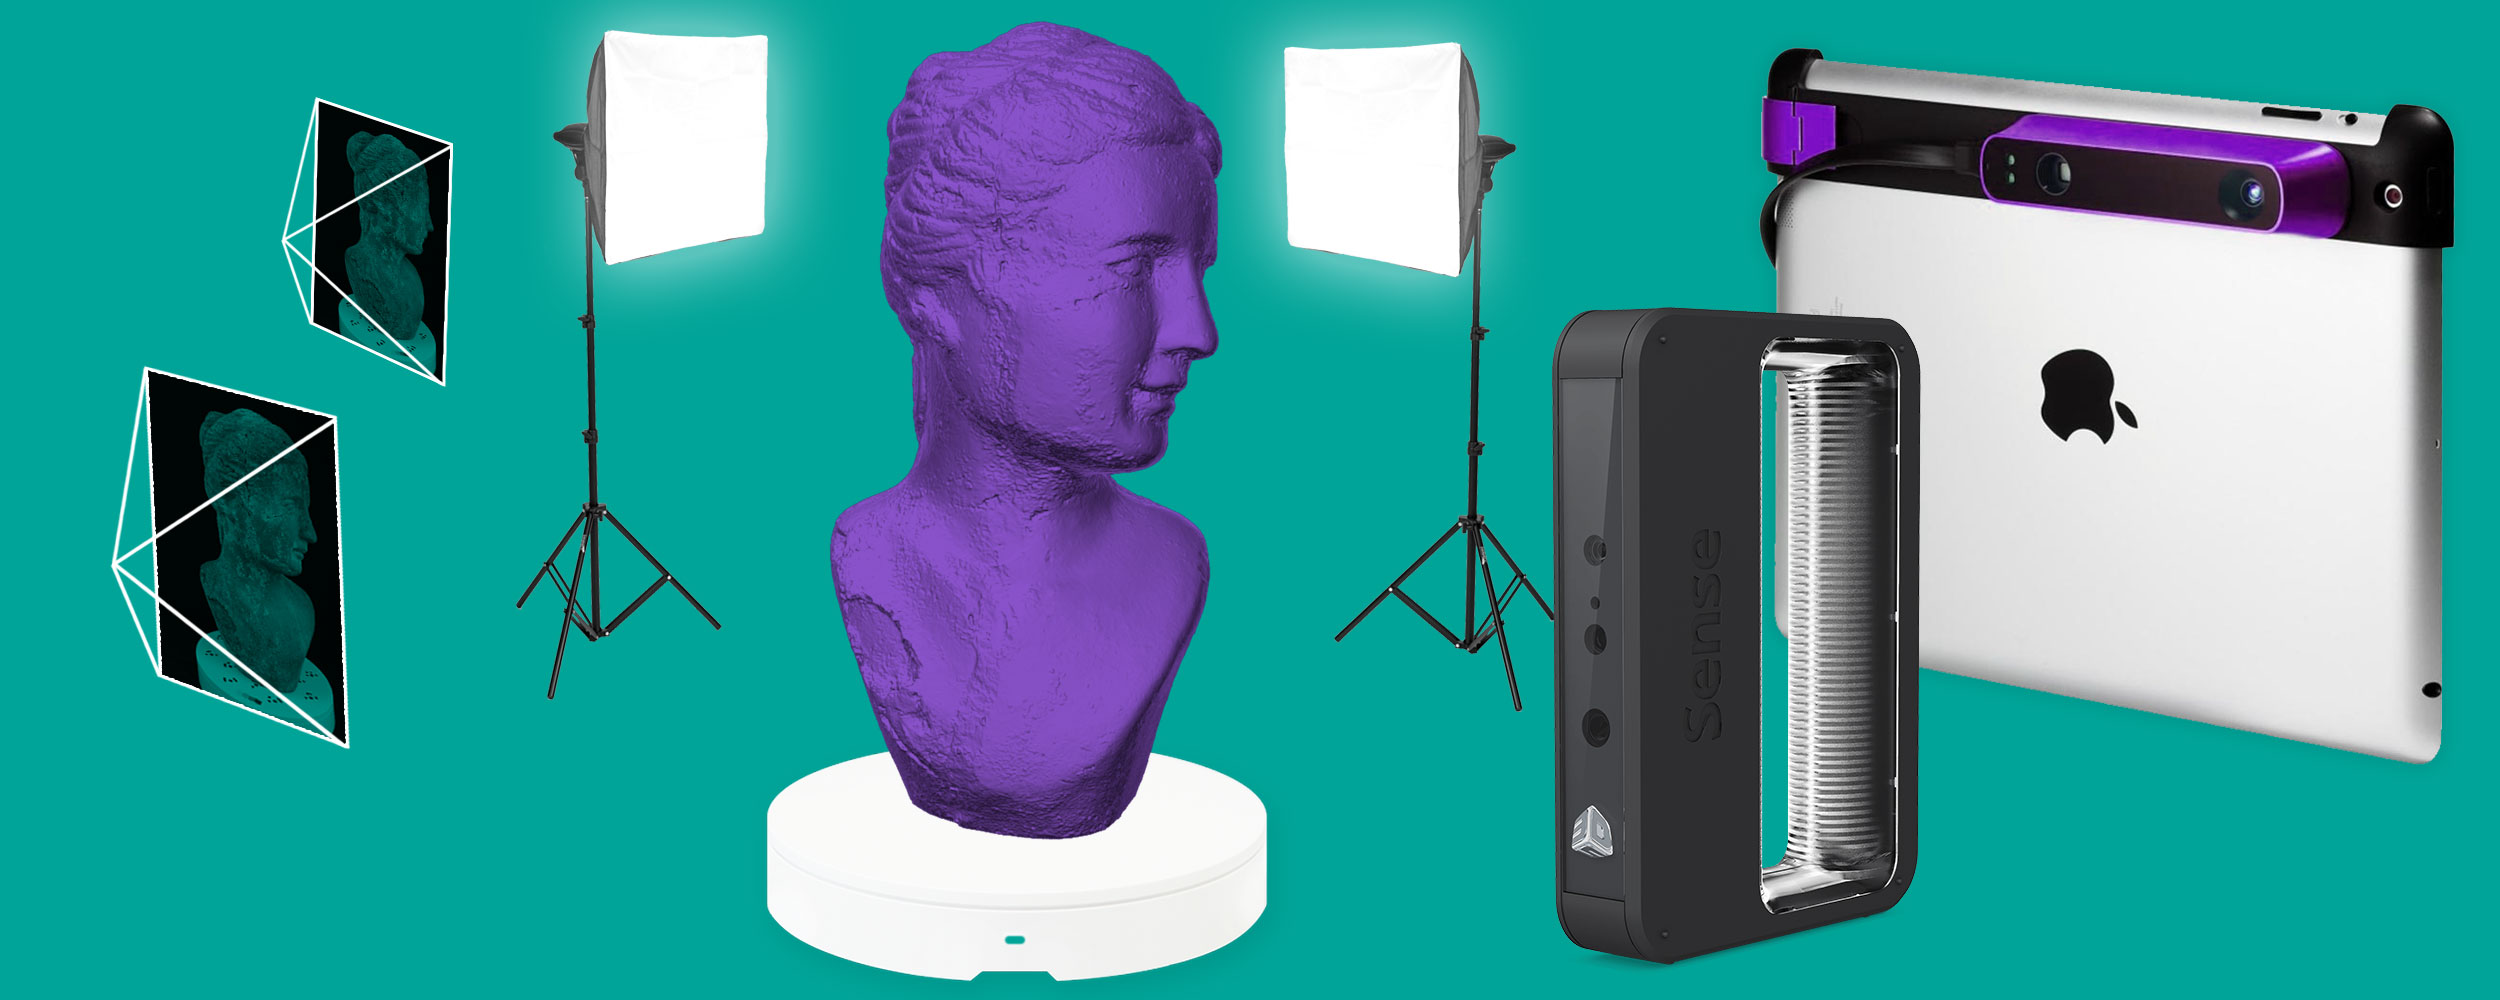 The Beginners Guide to 3D Scanning & Photogrammetry on a Budget - 3D